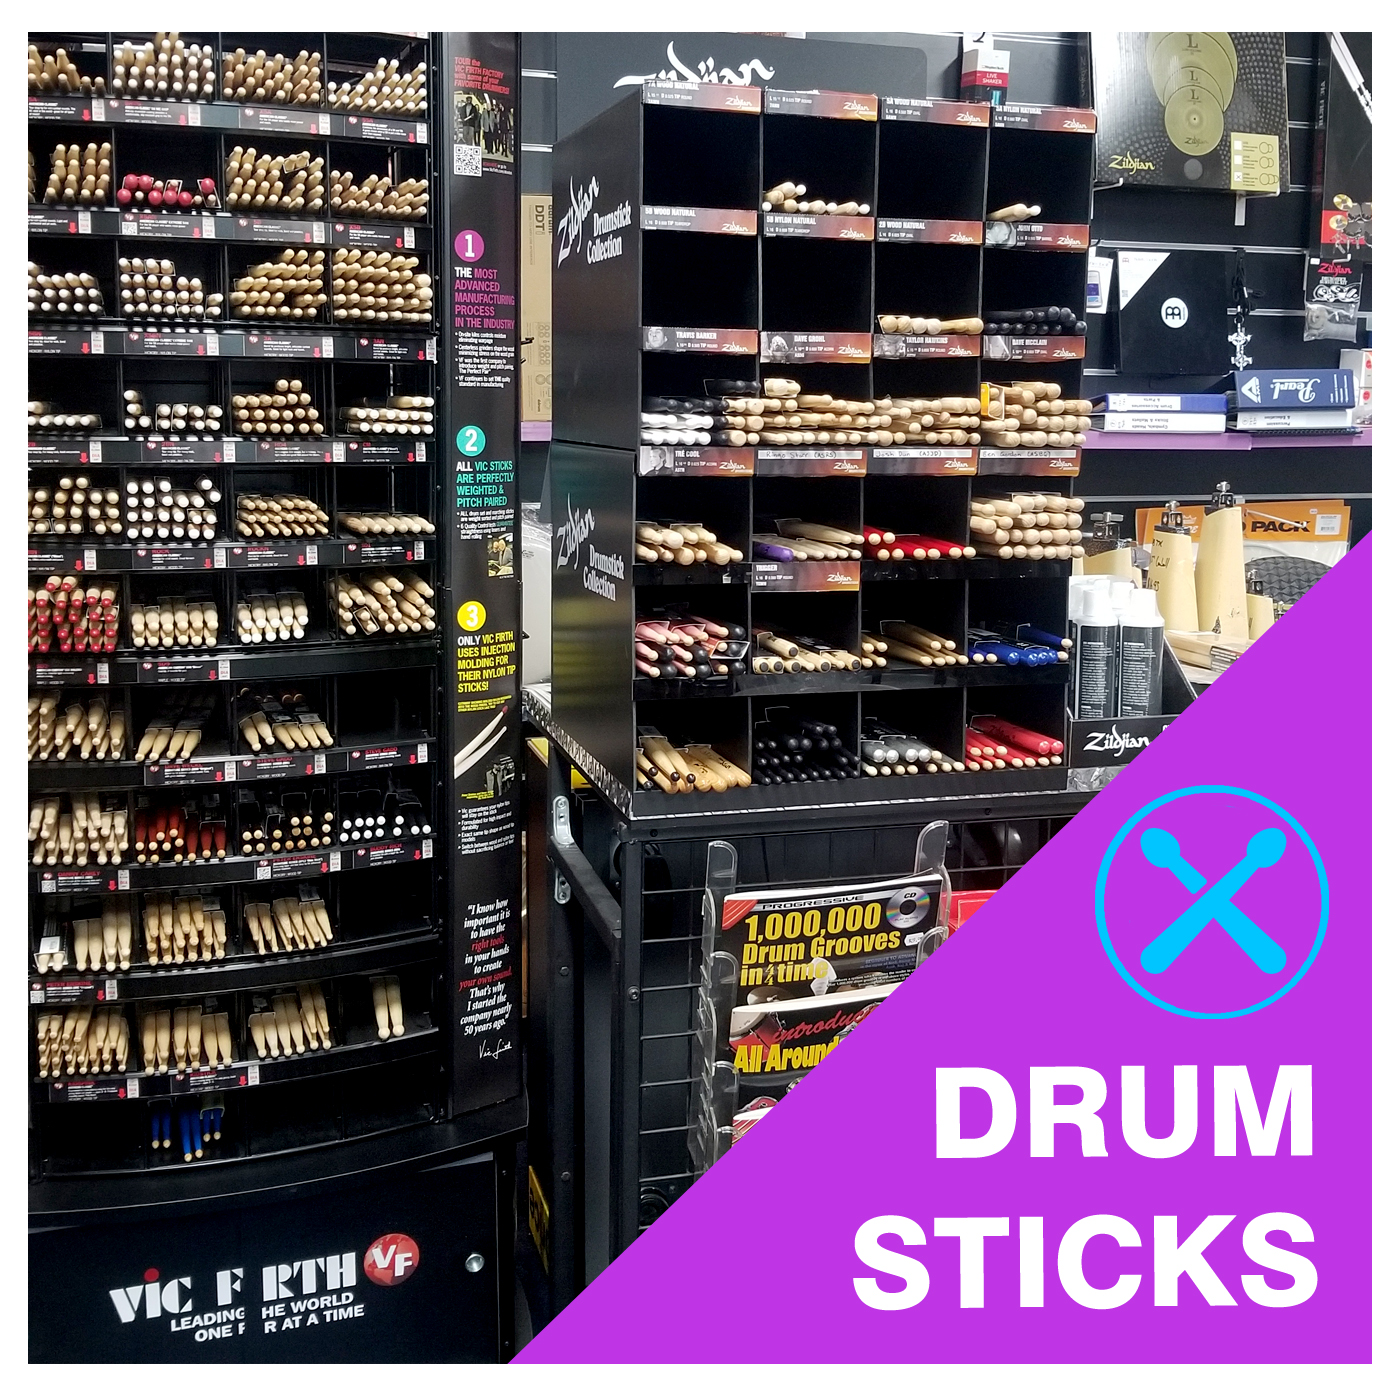 drum-sticks.jpg